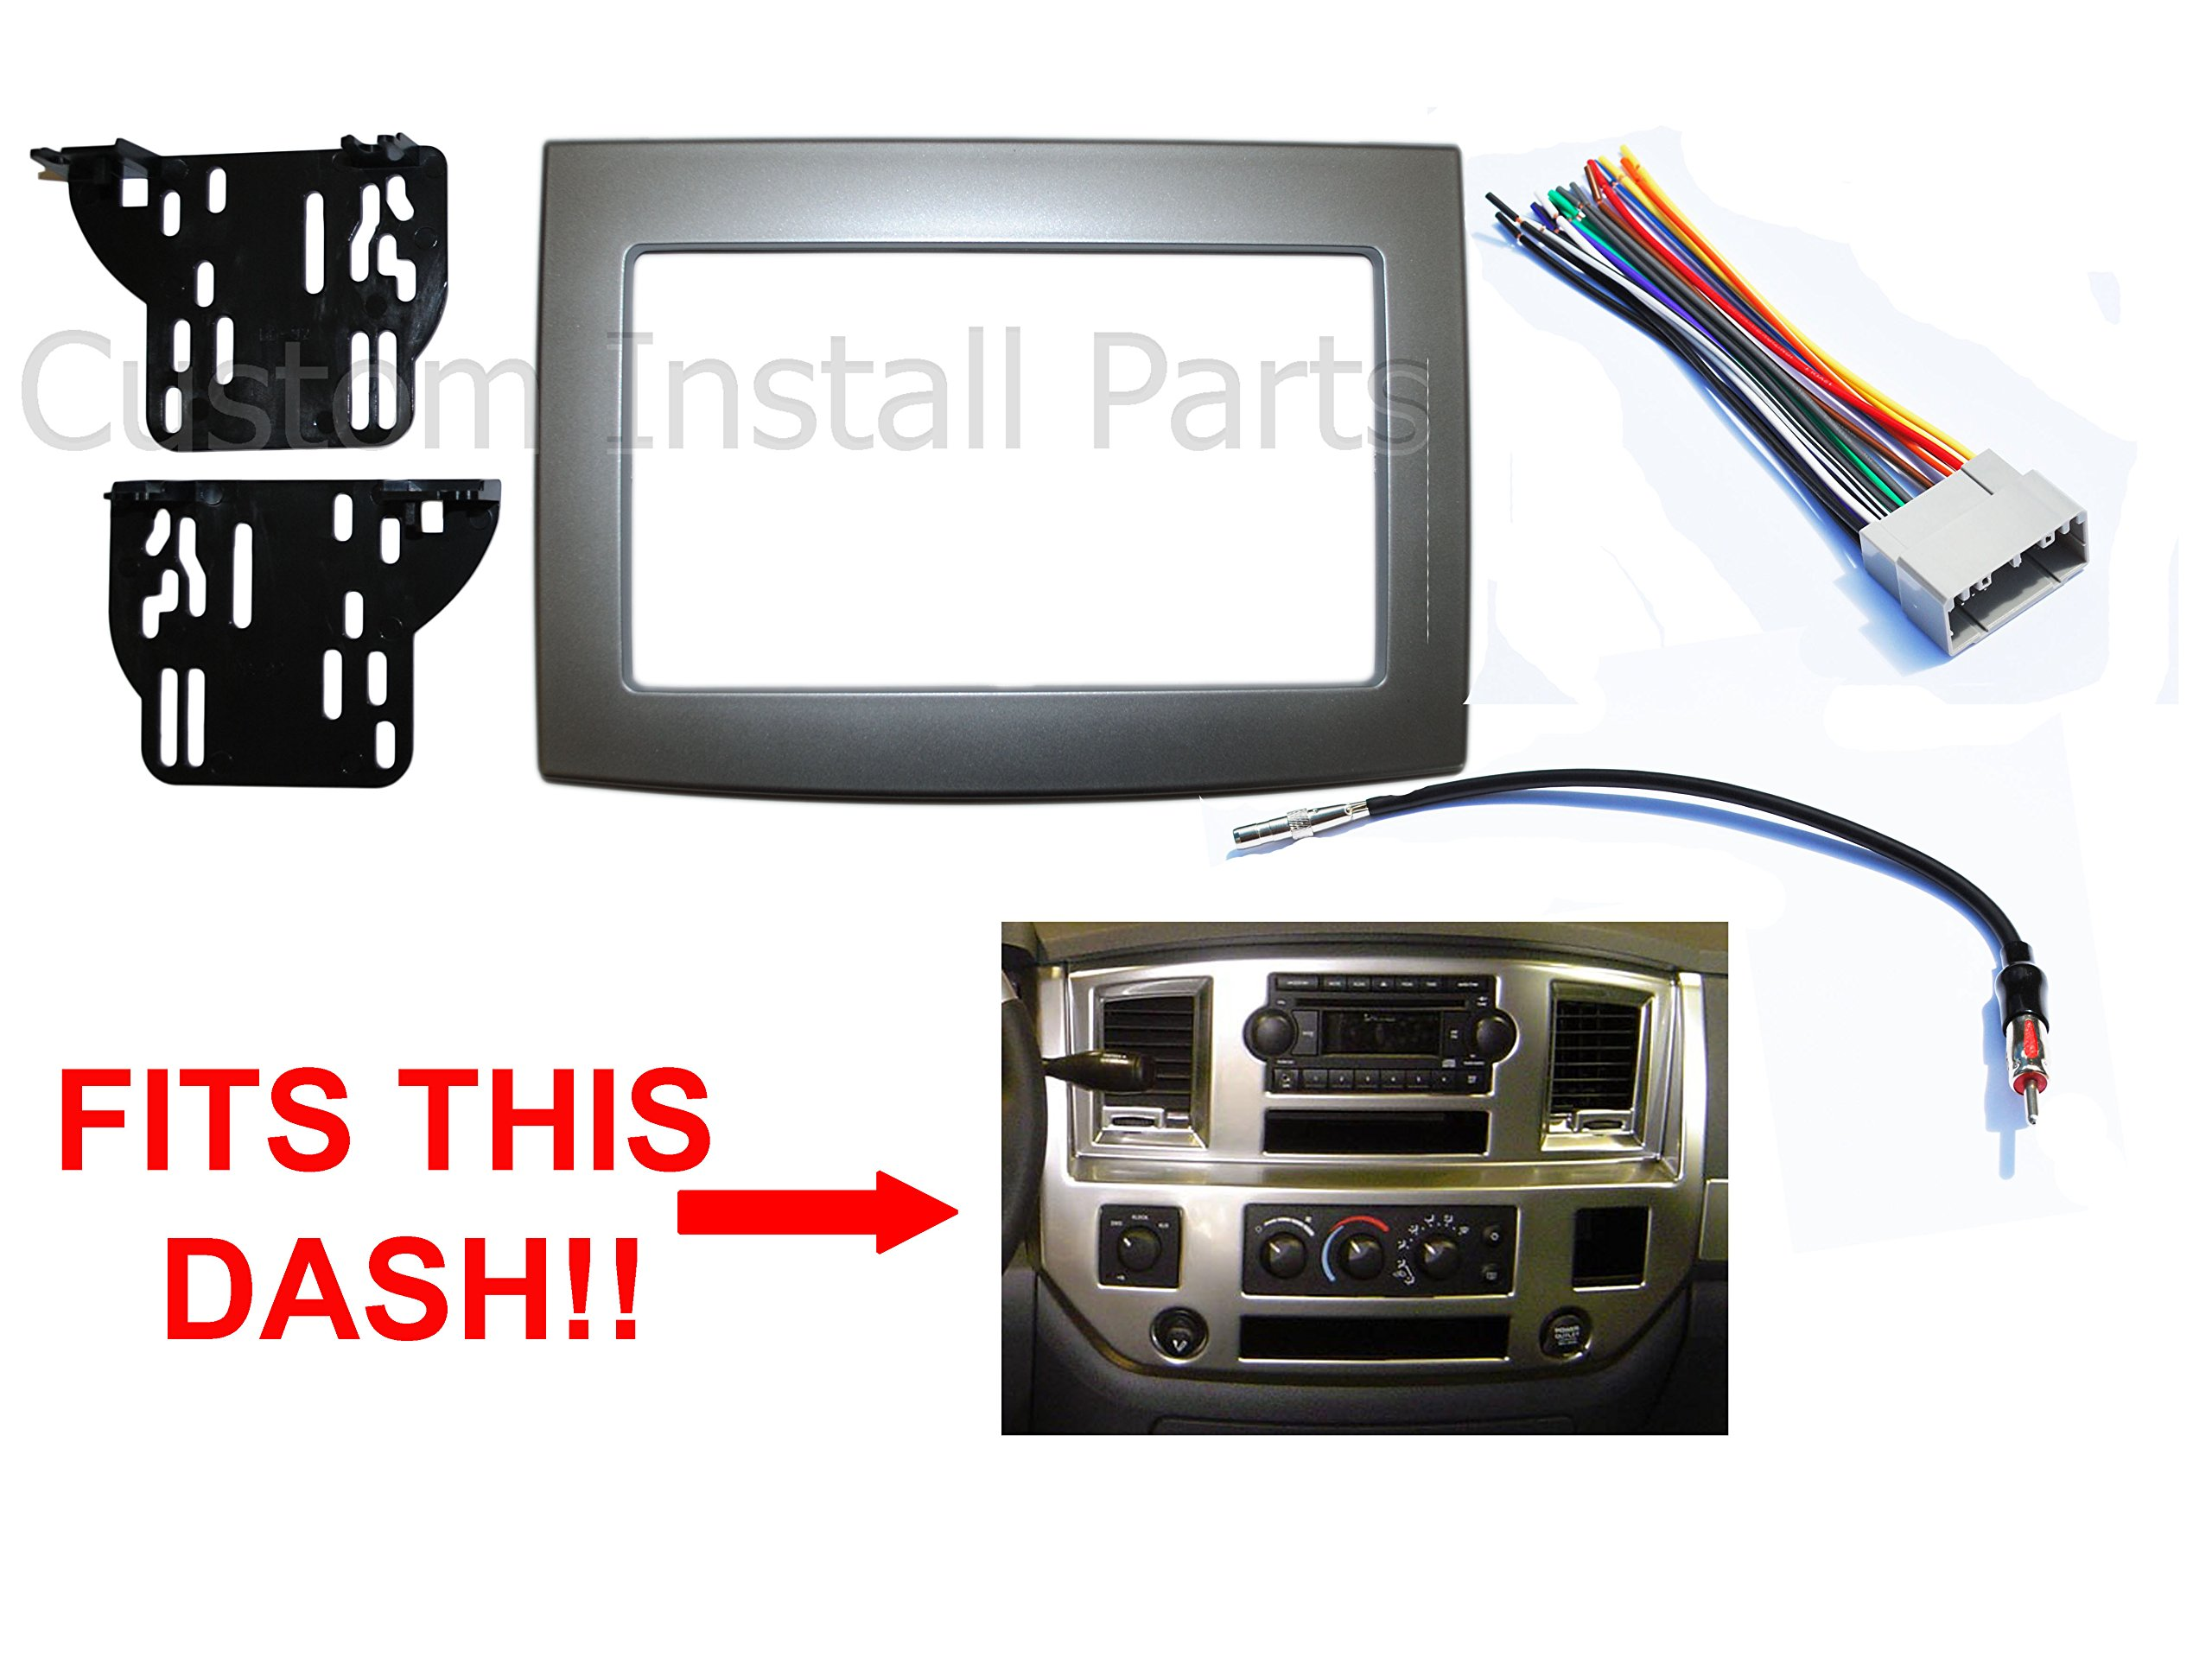 Silver Double Din Dash Install Kit w/ Wiring Harness Radio Stereo Fits Dodge Ram